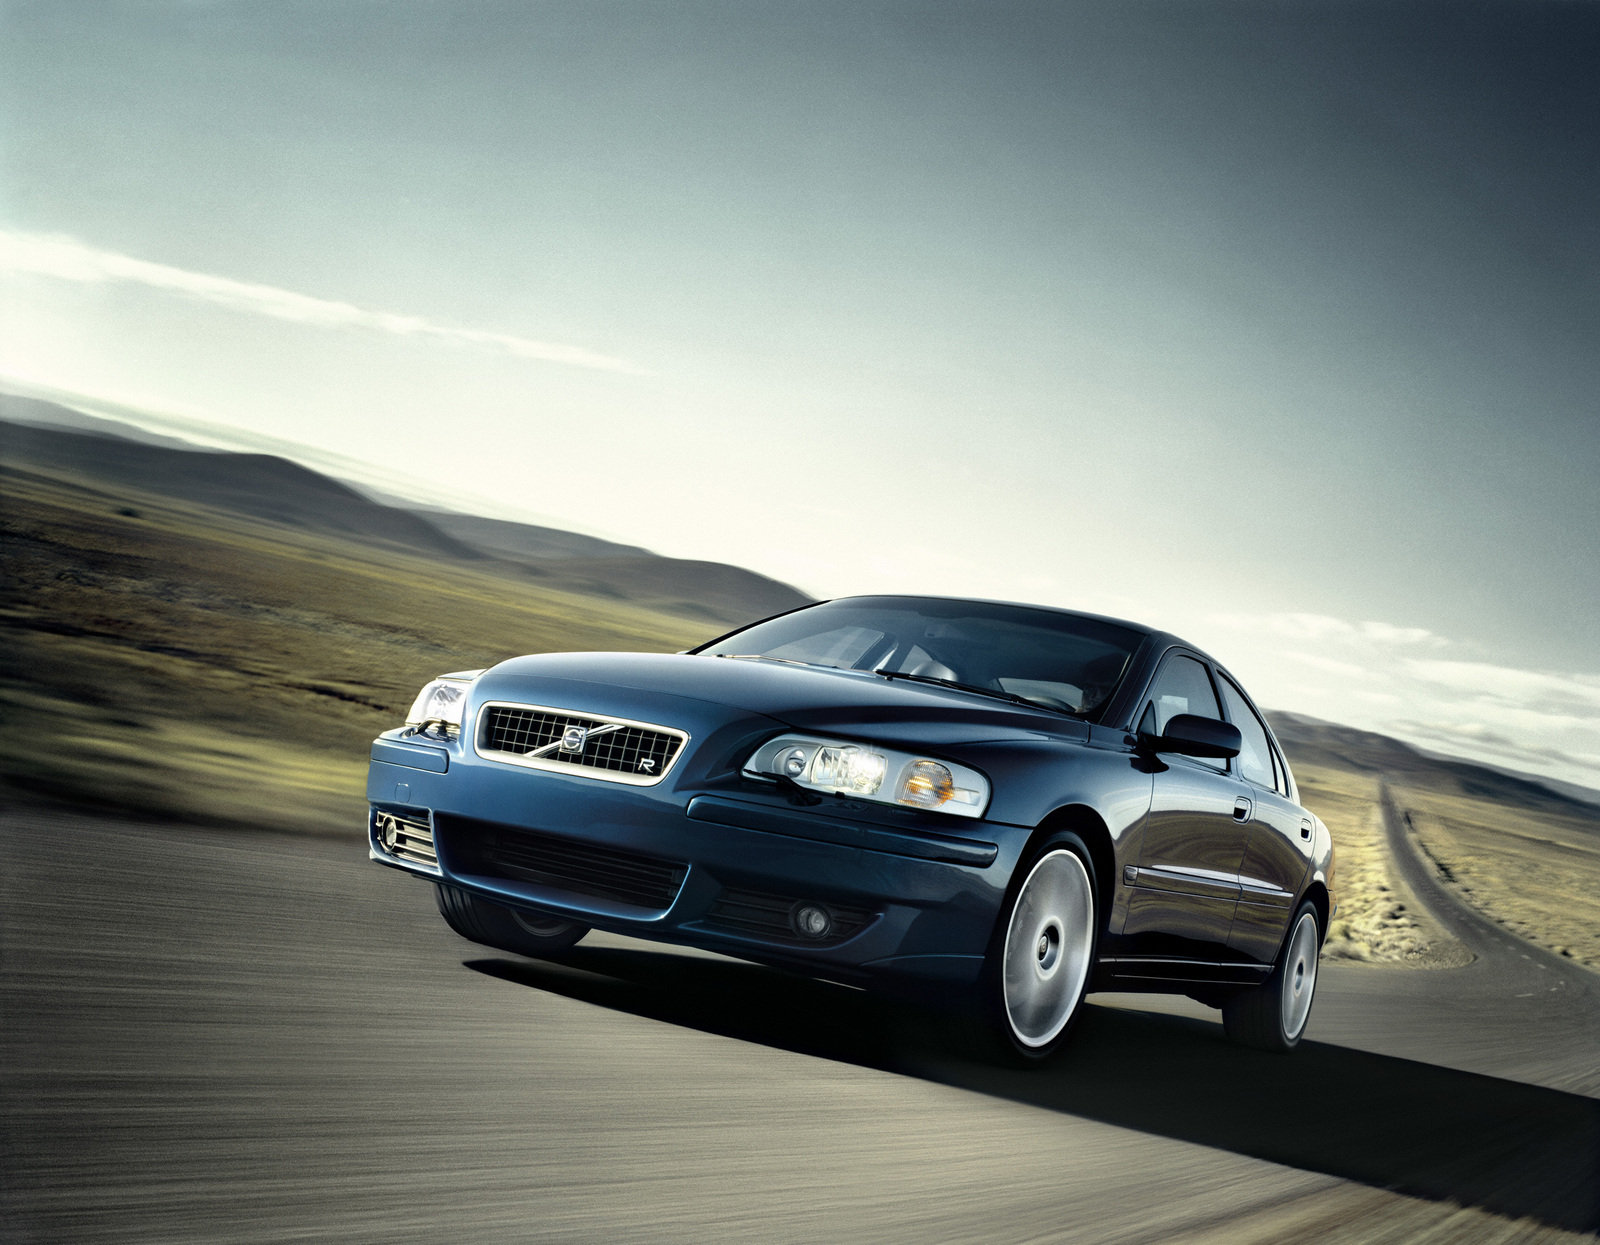 2006 Volvo V70 R Review - Top Speed